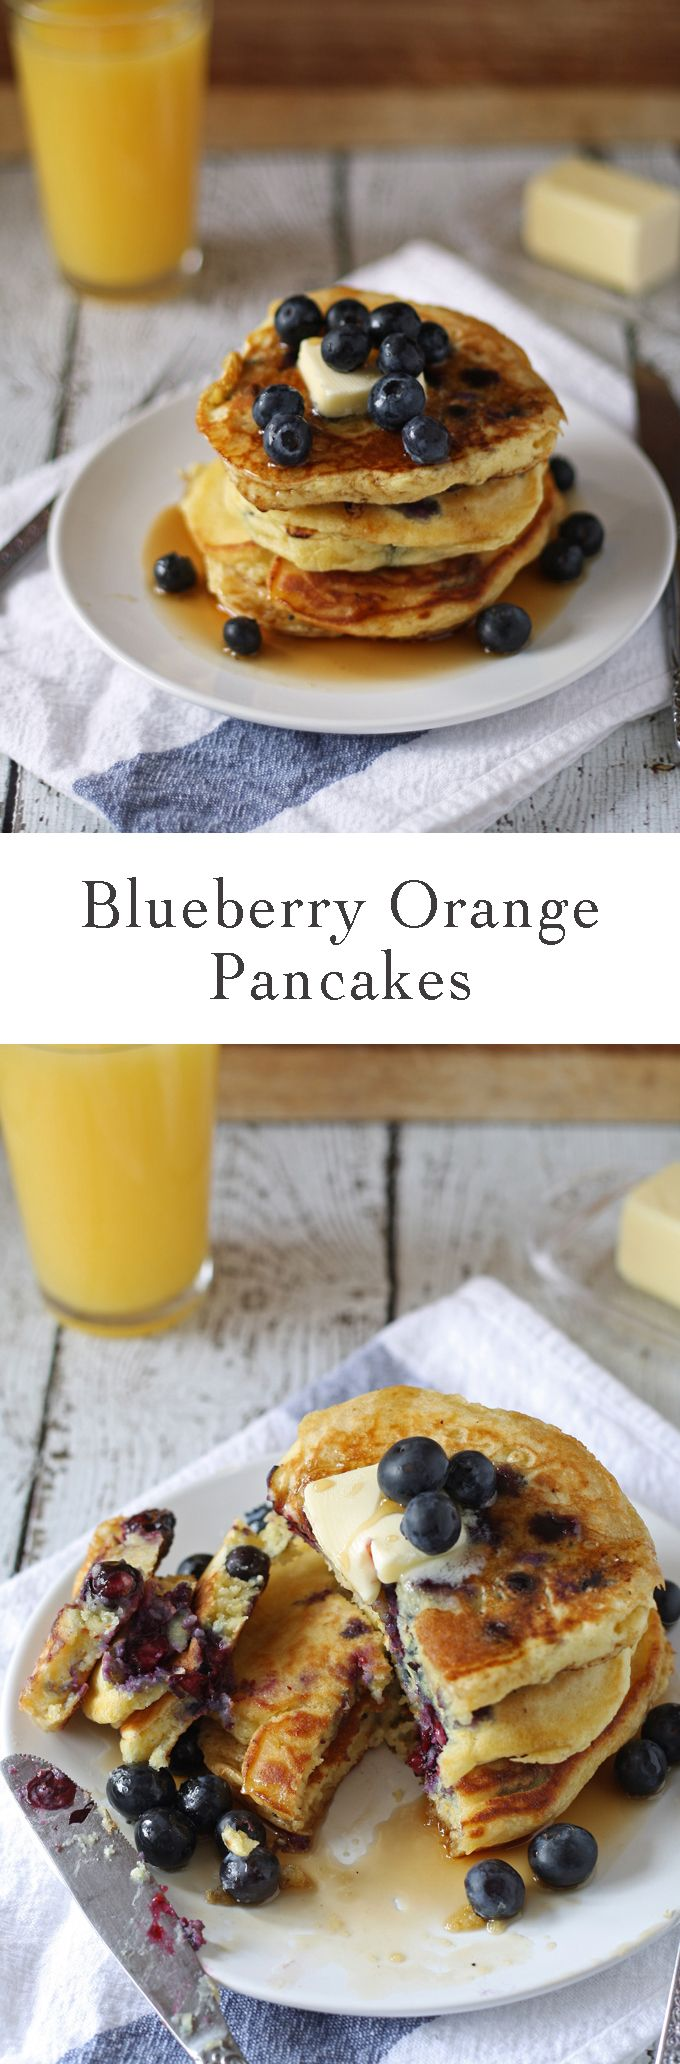 Celebrate National Blueberry Pancake day with these blueberry orange pancakes! Breakfast will never be the same. | honeyandbirch.com | ideas | easy | perfect | favorite